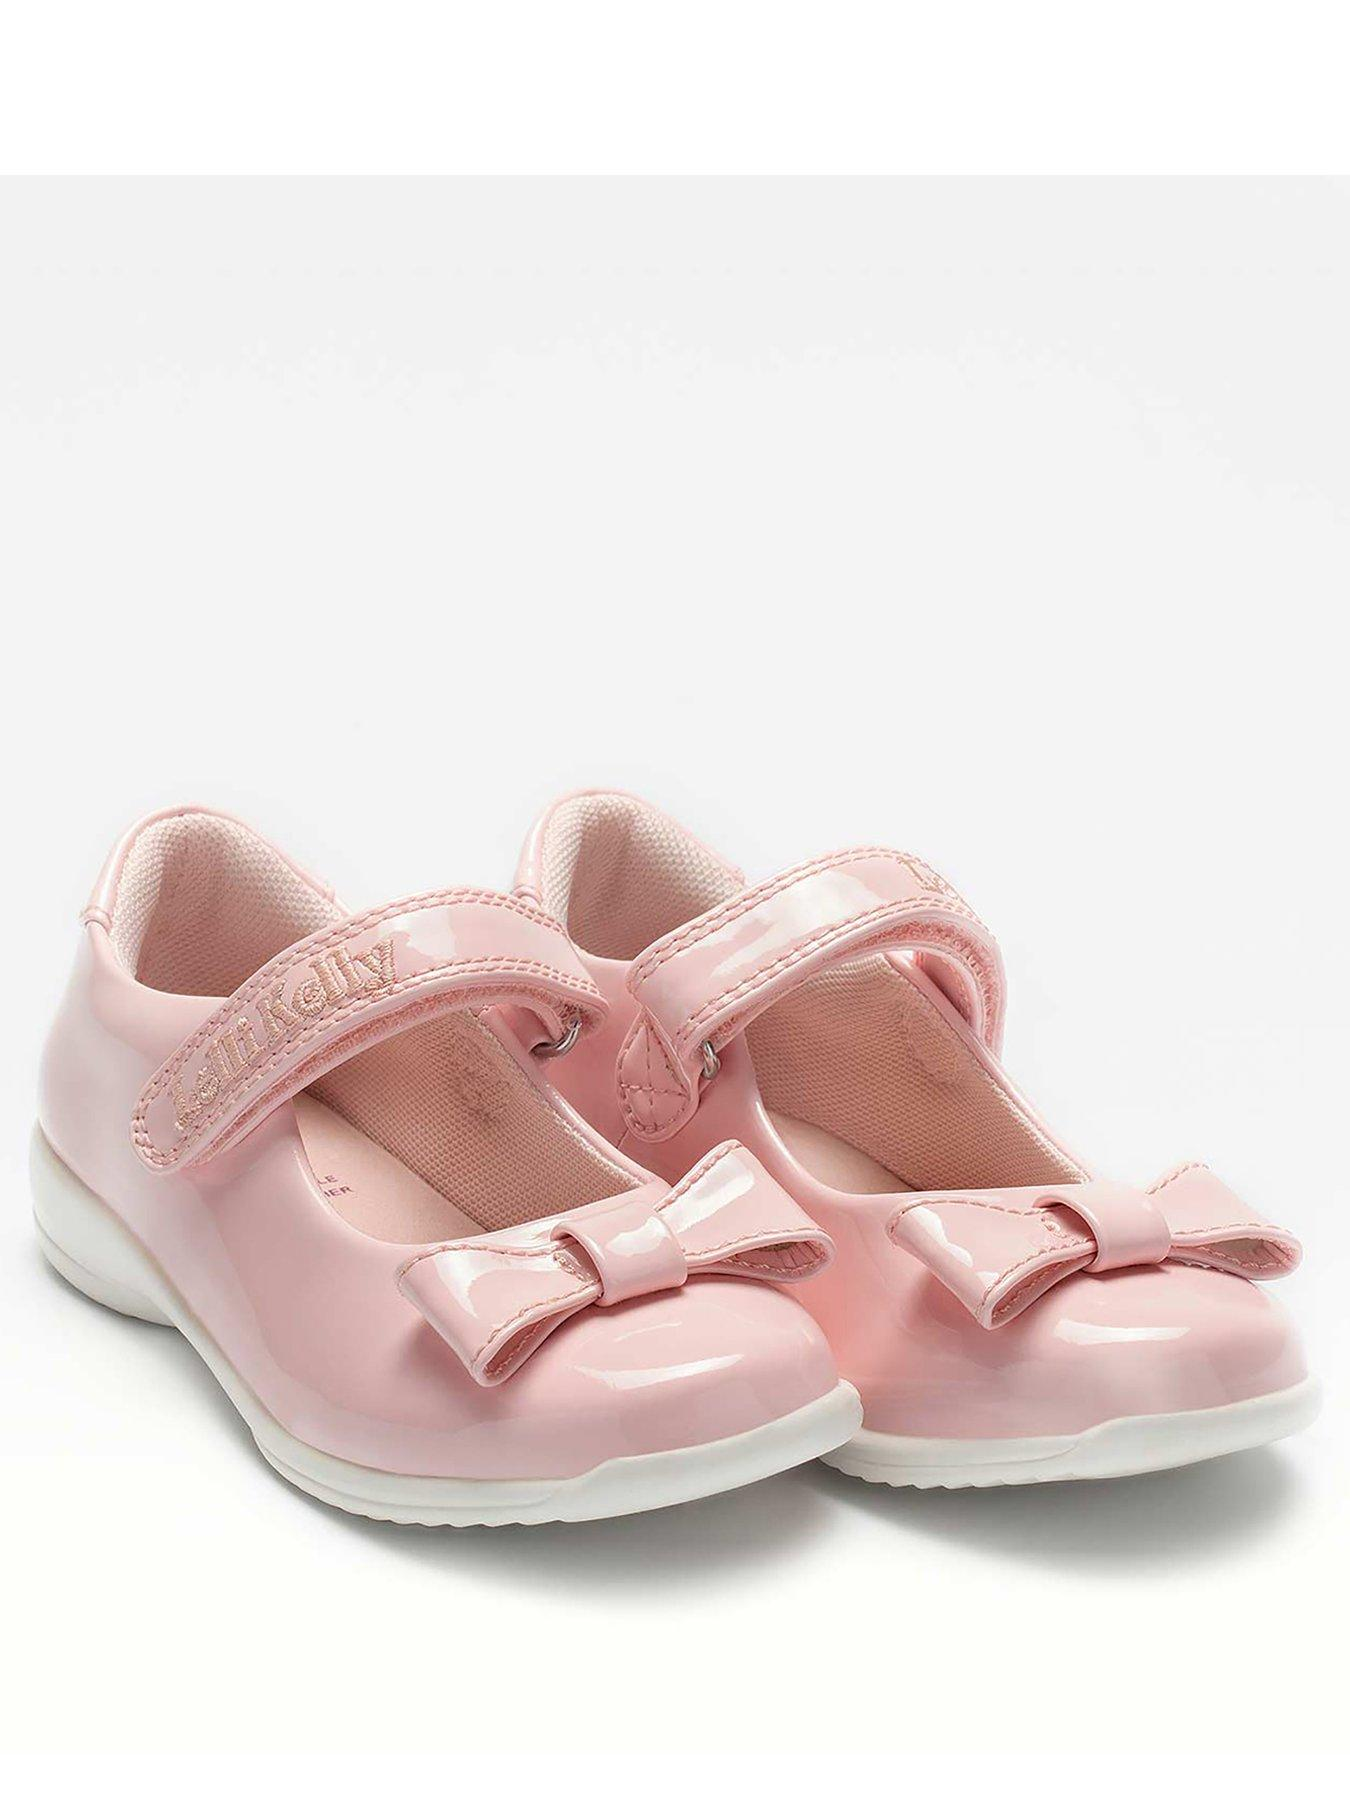 GIRLS PINK LACE SHOE-CRIB PRAM FIRST WALKERS BUTTERFLY DIMANATES-DRESS SHOES